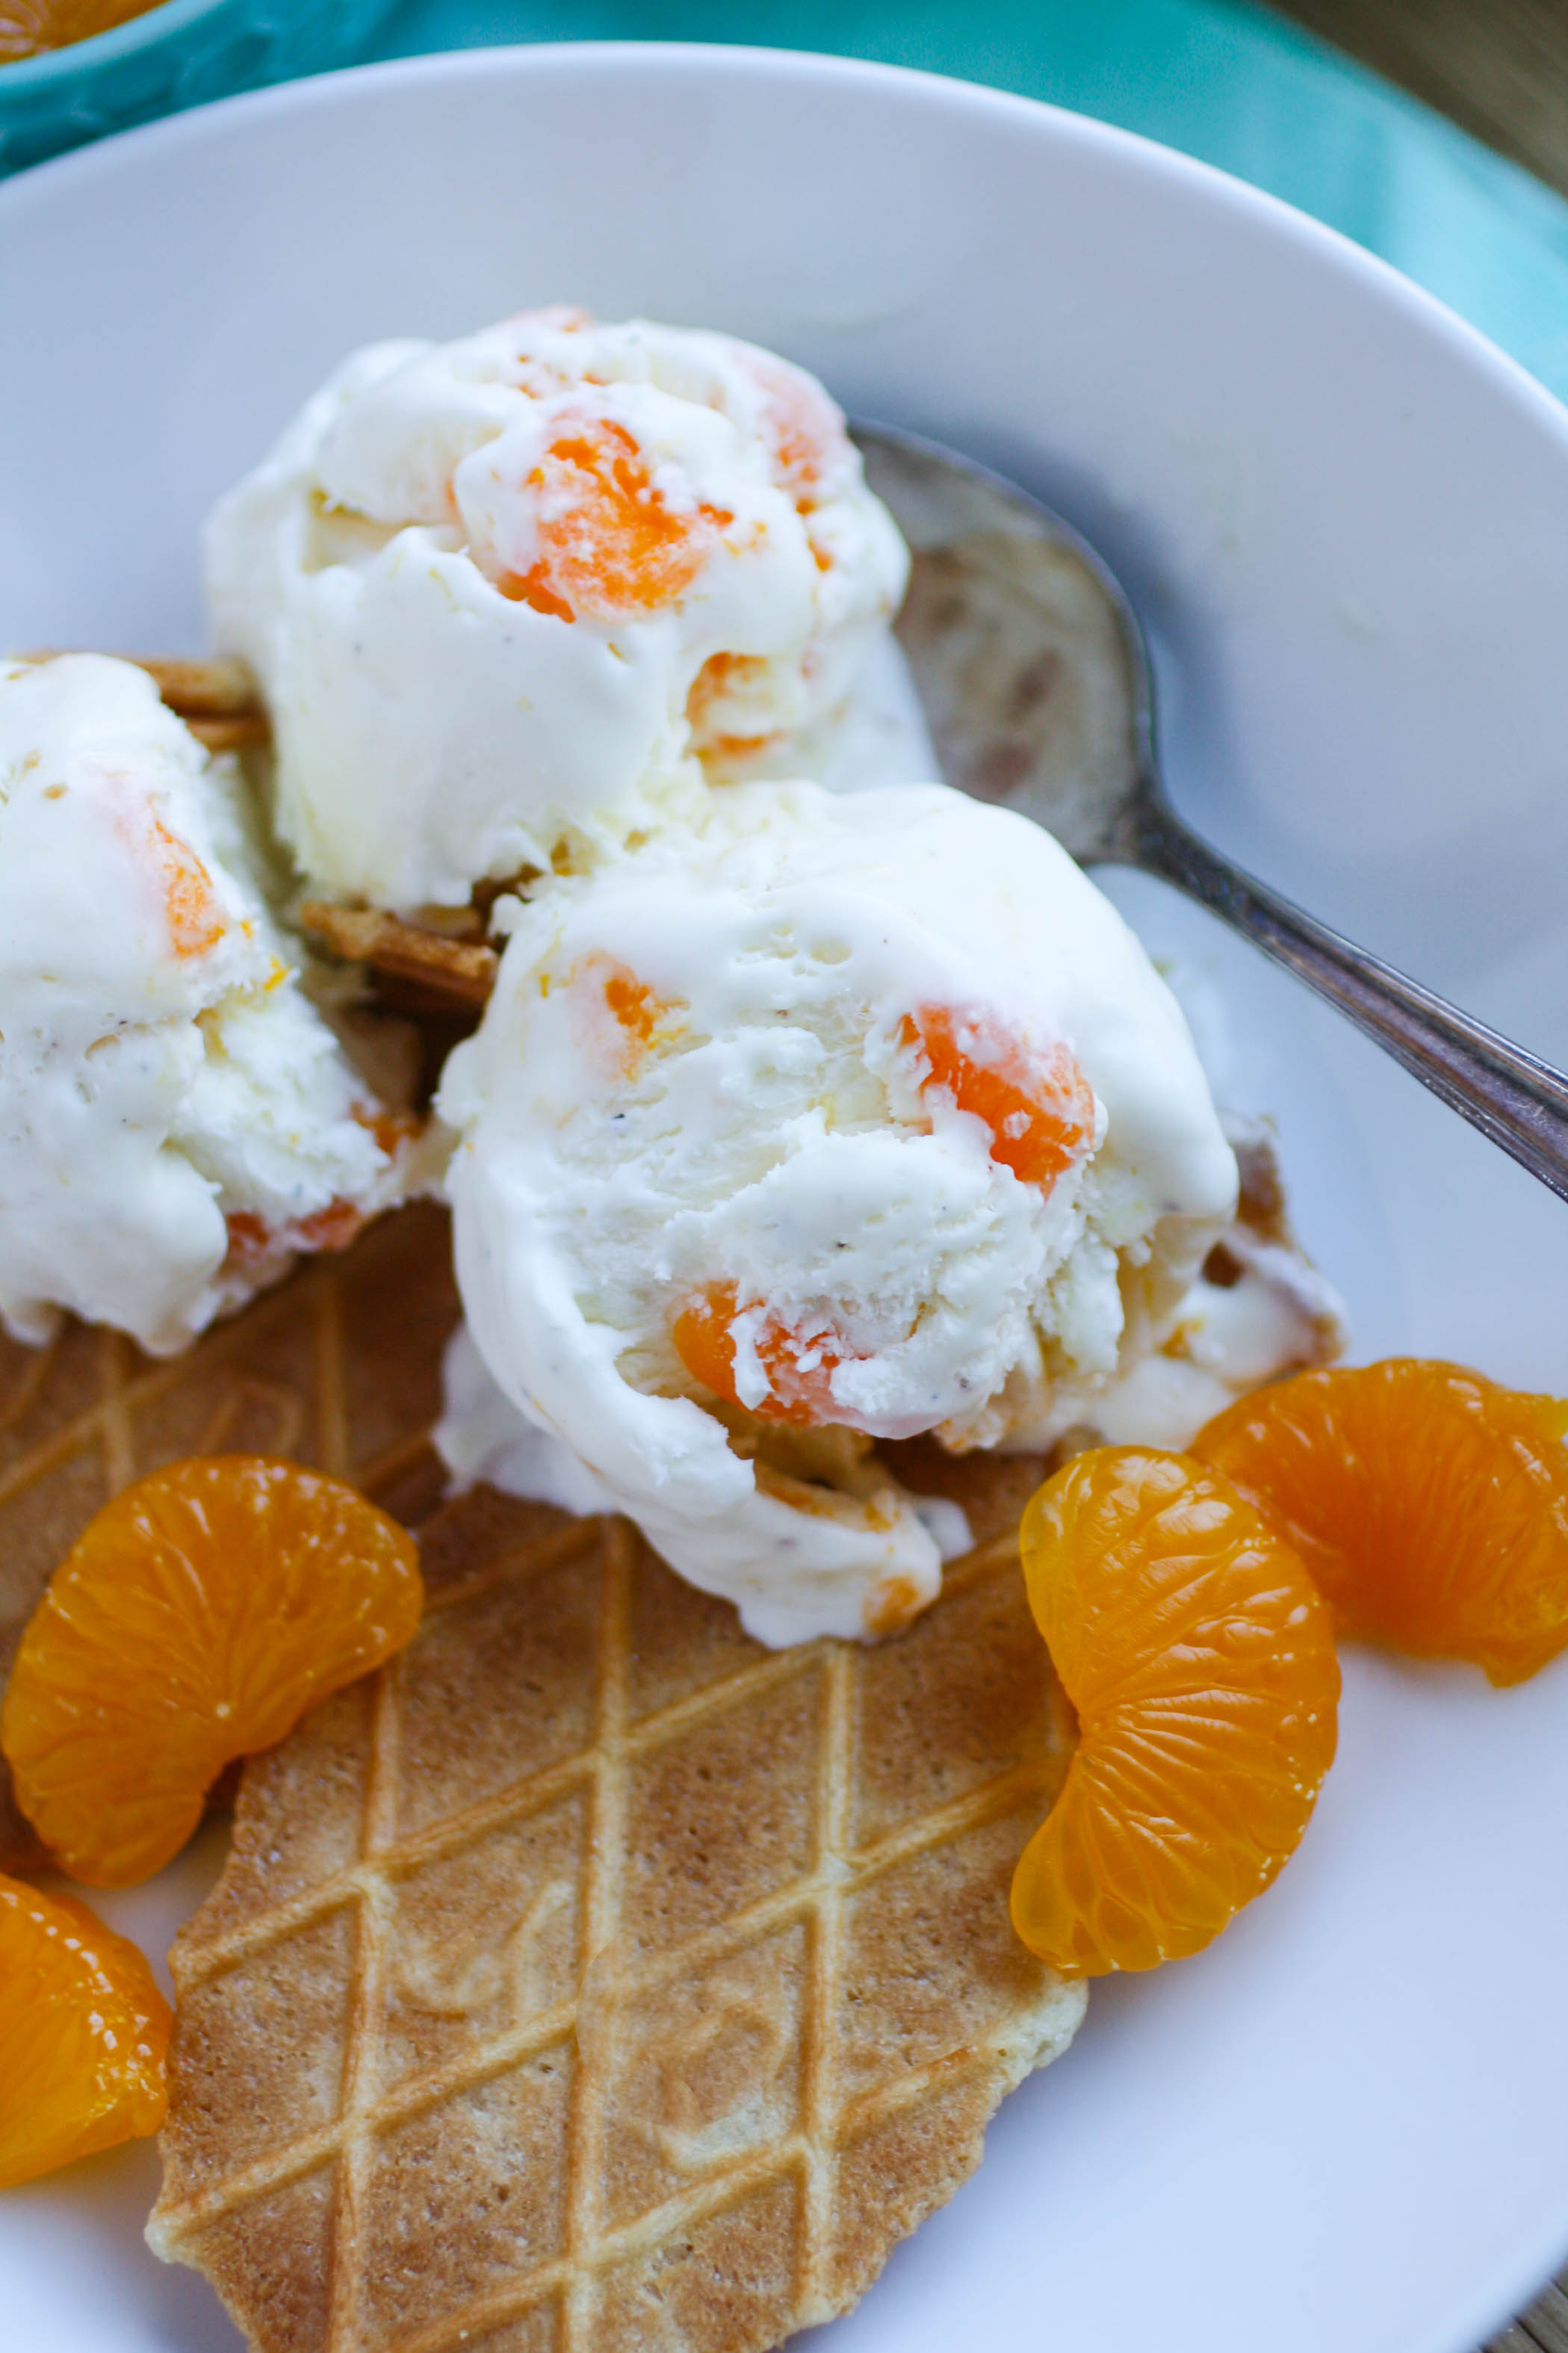 No Churn Orange-Cardamom Ice Cream is a great way to start the weekend! You'll love this tasty and easy-to-make dessert!